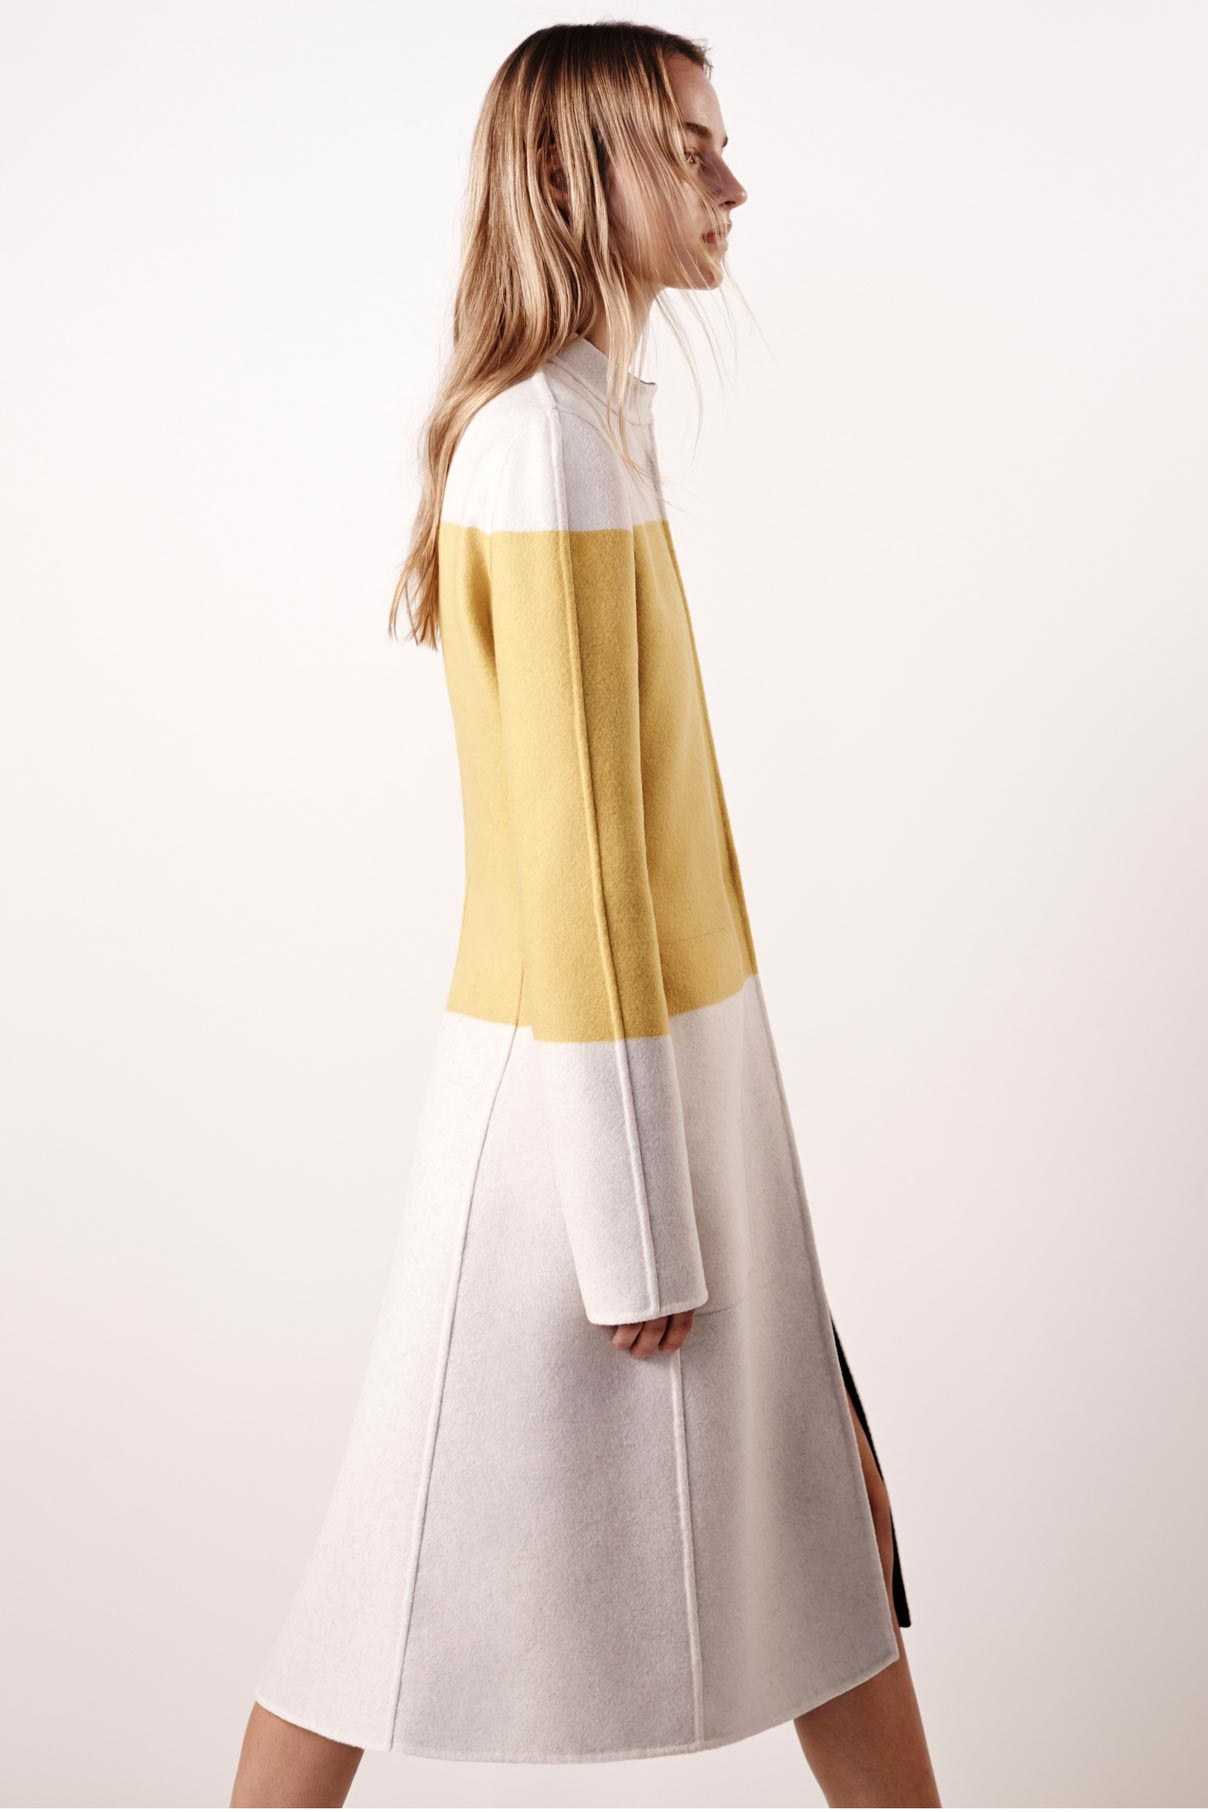 Look 2 Yellow/natural double face wool coat.